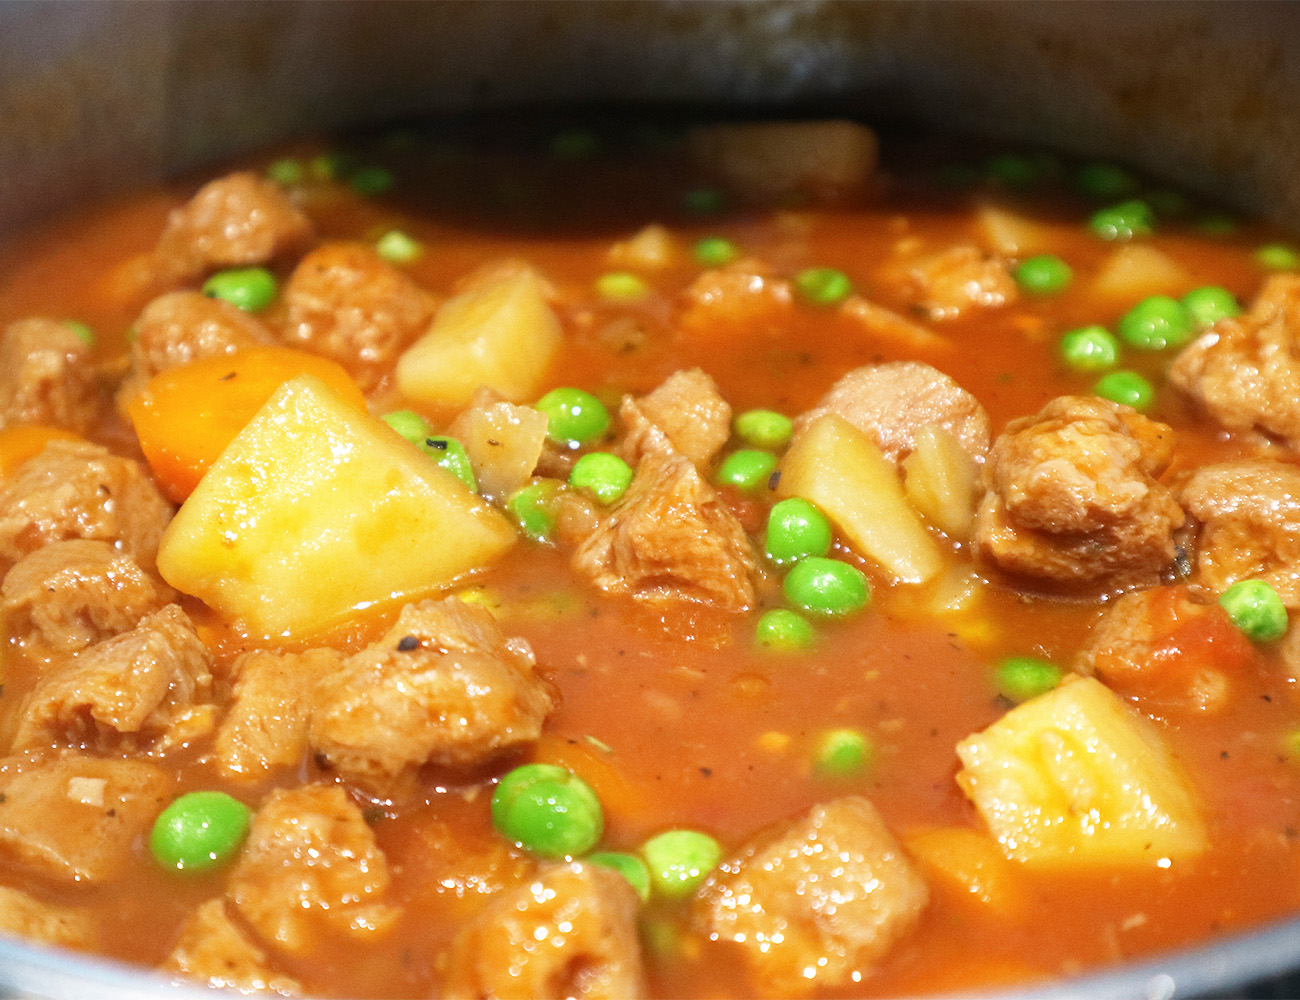 'beef' stew in a large pan